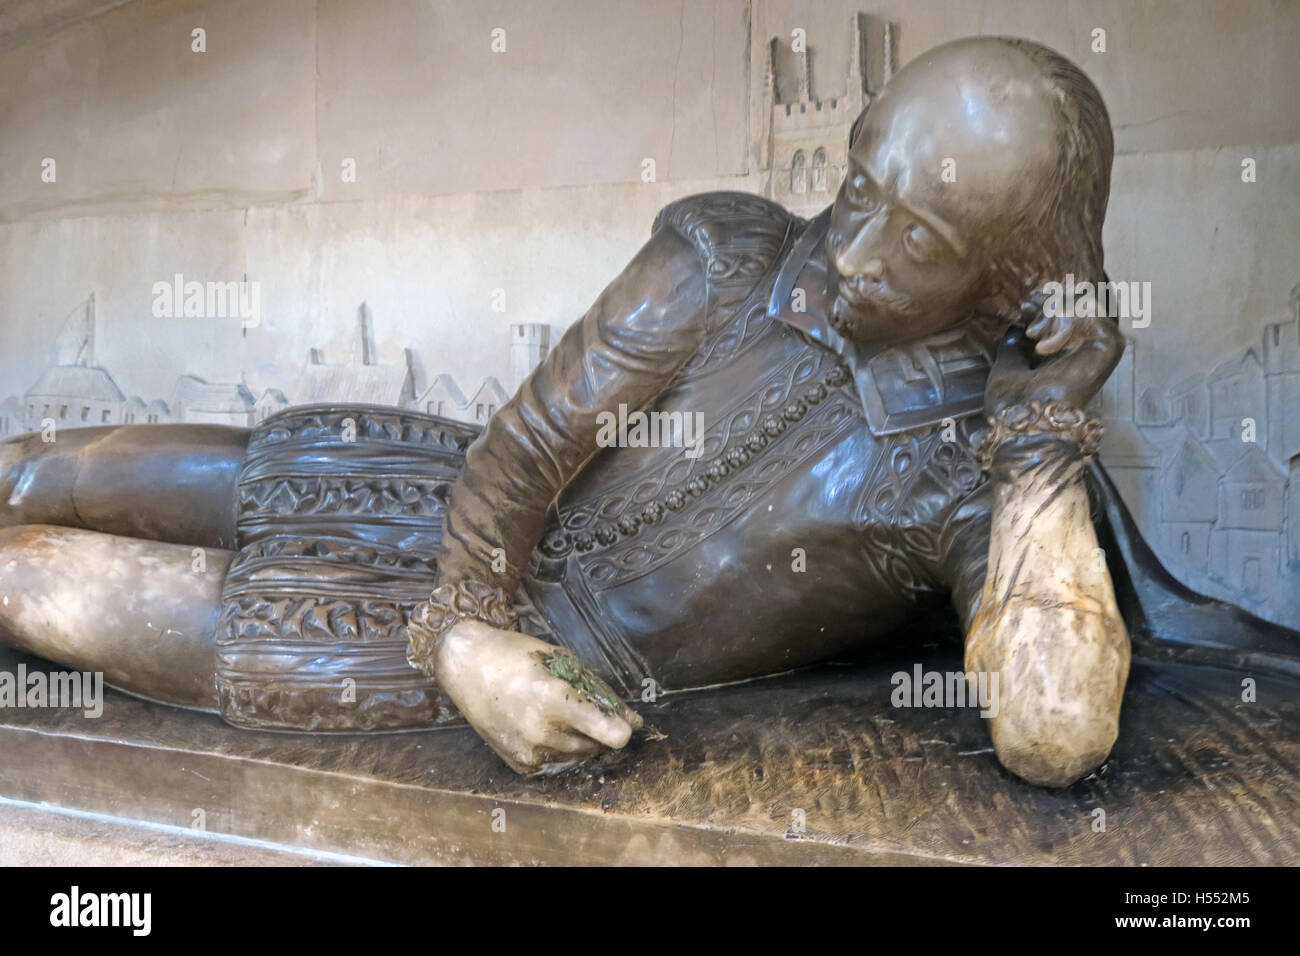 London,River,Thames,Play,plays,author,alabaster,holding,a,quill,reclining,famous,play,plays,playwright,religion,religious,sacred,dirty,city,centre,zone1,zone,one,1,William Shakespeare,William Shakespeare statue,Southwark Cathedral,city centre,GoTonySmith,@HotpixUK,Tony,Smith,UK,GB,Great,Britain,United,Kingdom,English,British,England,tourist,travel,tourists,tourism,Buy Pictures of,Buy Images Of,Images of,Stock Images,Tony Smith,United Kingdom,Great Britain,British Isles